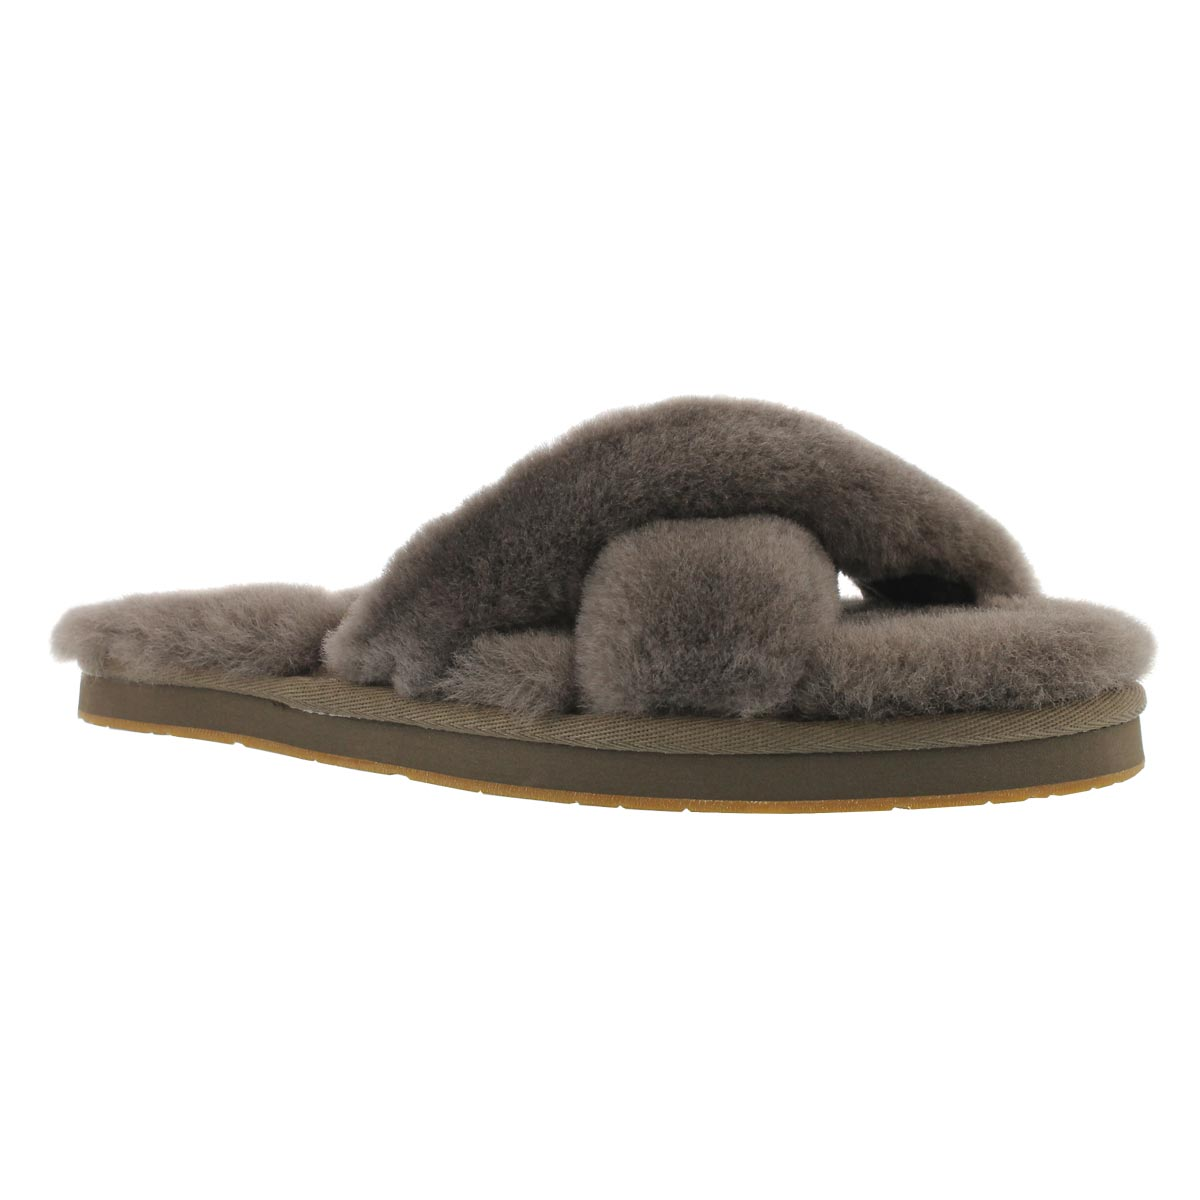 Women's ABELA slate sheepskin slippers